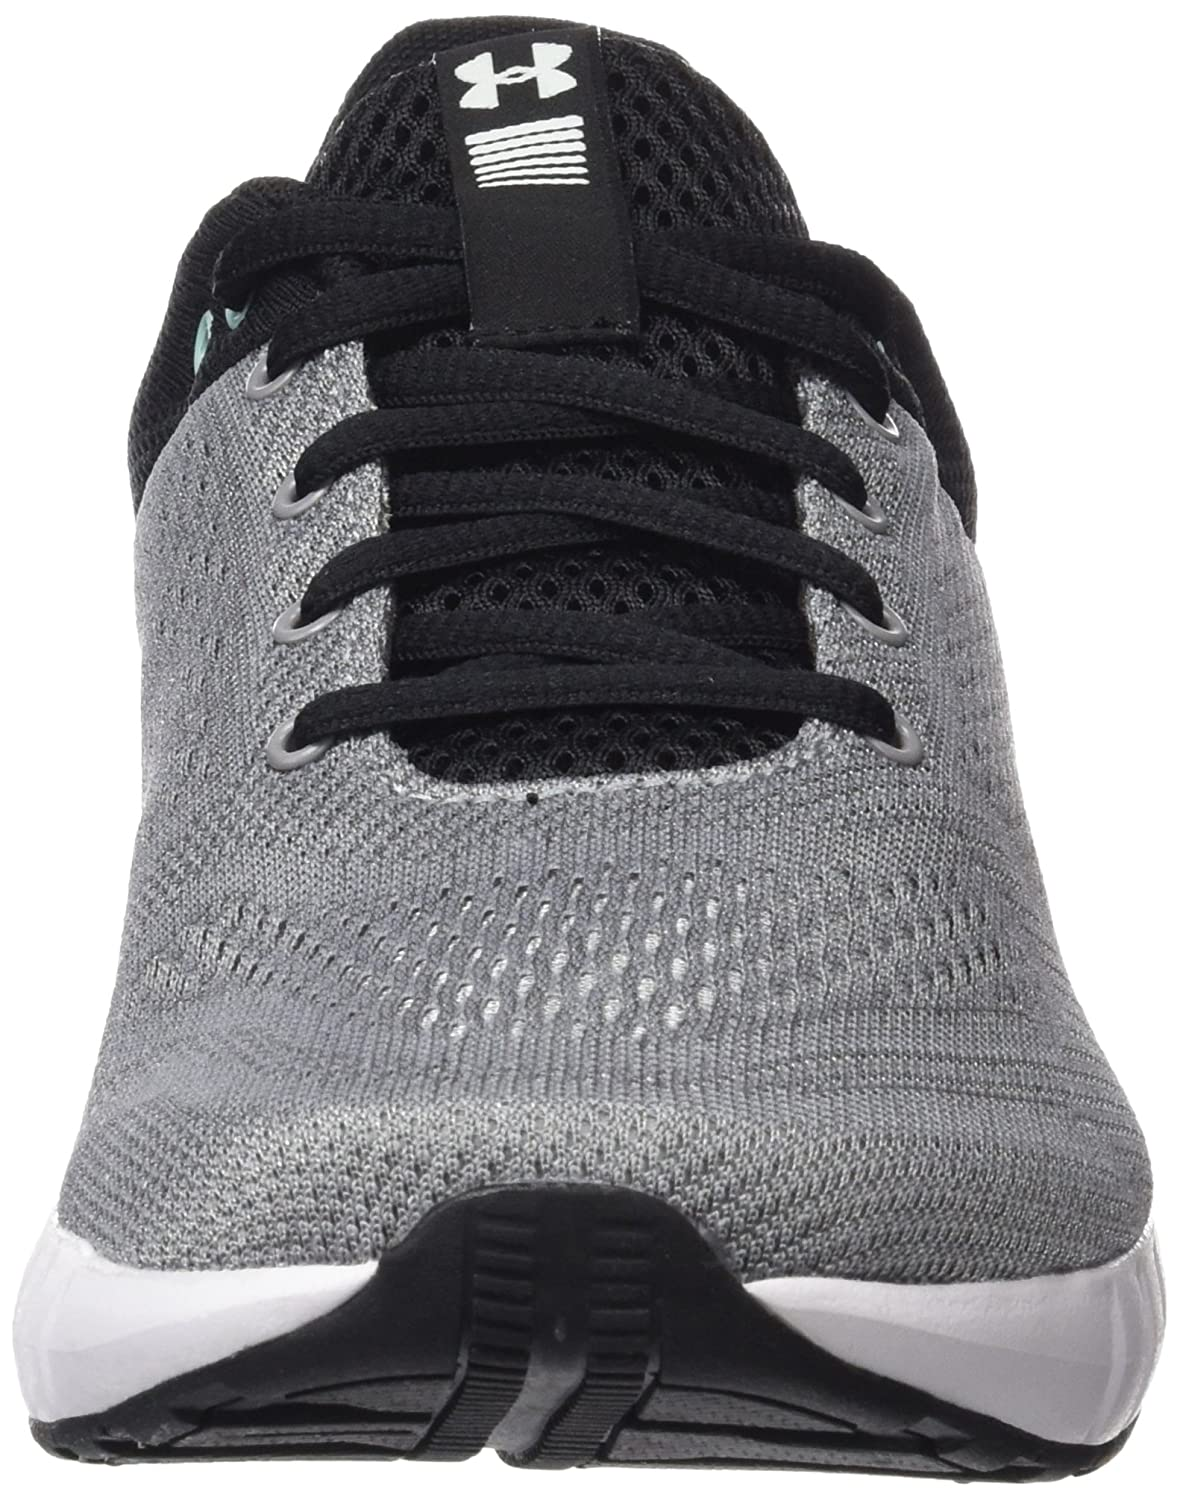 Under Armour Damen Damen Damen Micro G Pursuit Turnschuhe c537d5